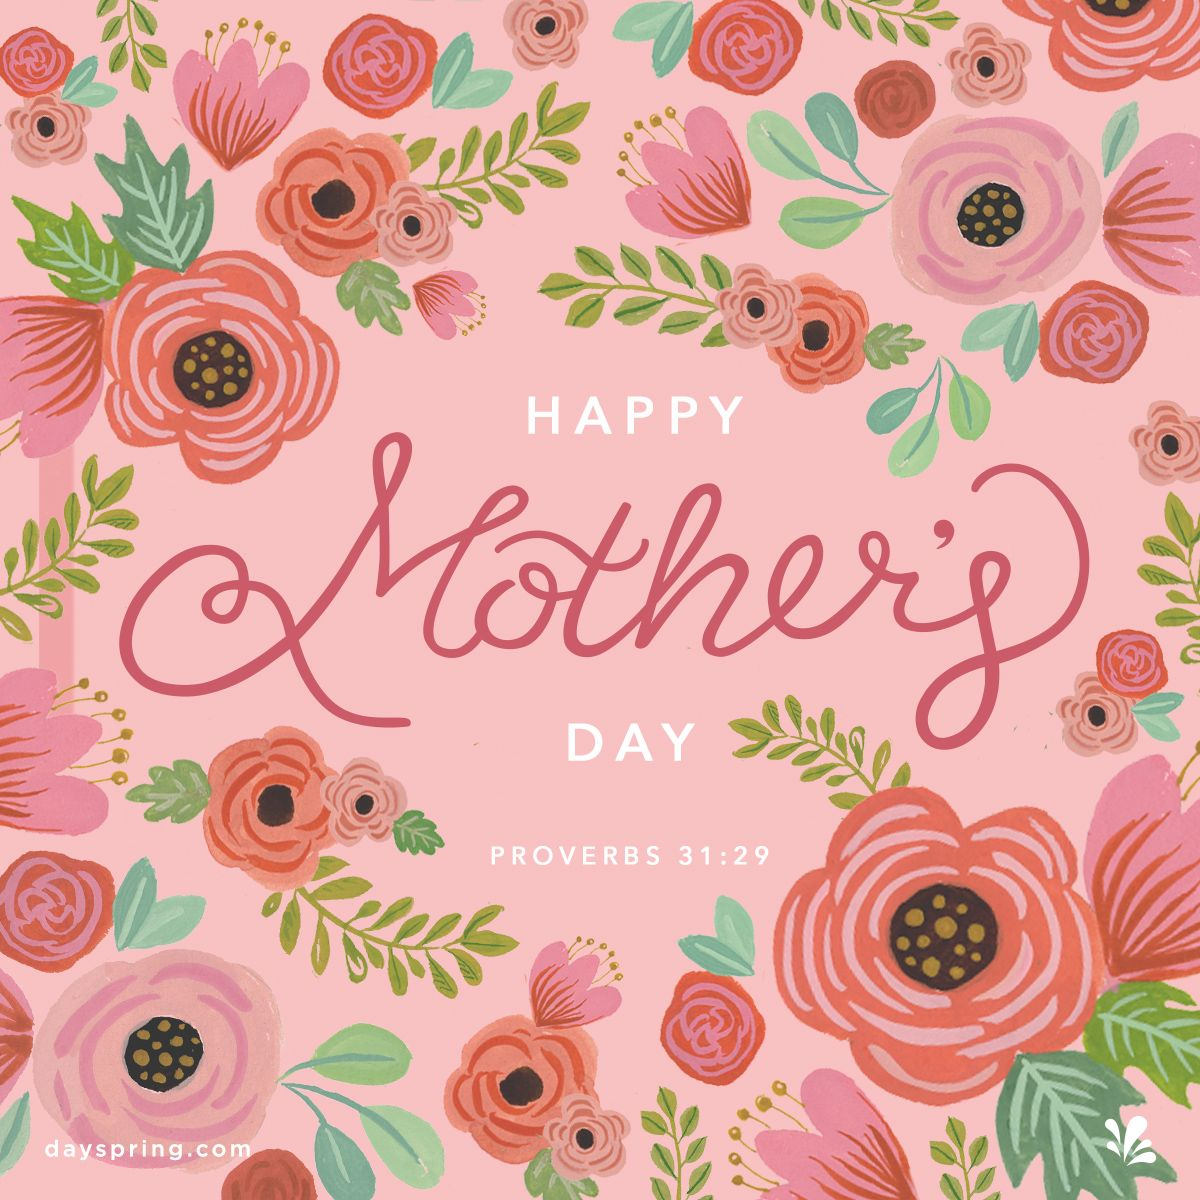 Ecards mother day wishes online mothers day cards